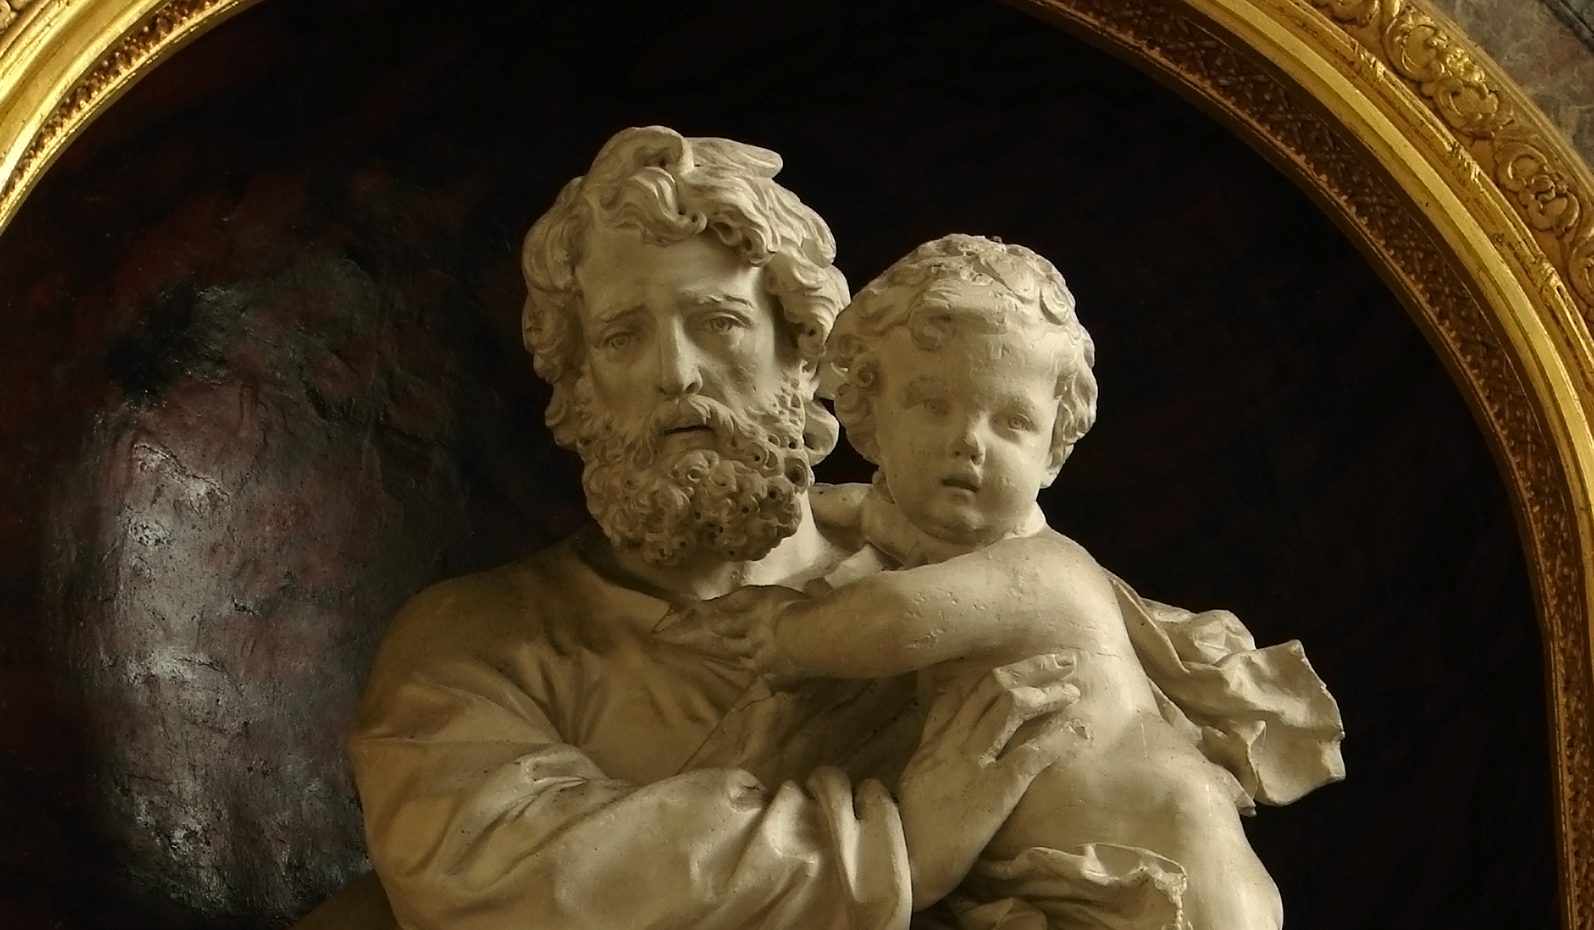 With a Father's Heart: The Year of St. Joseph